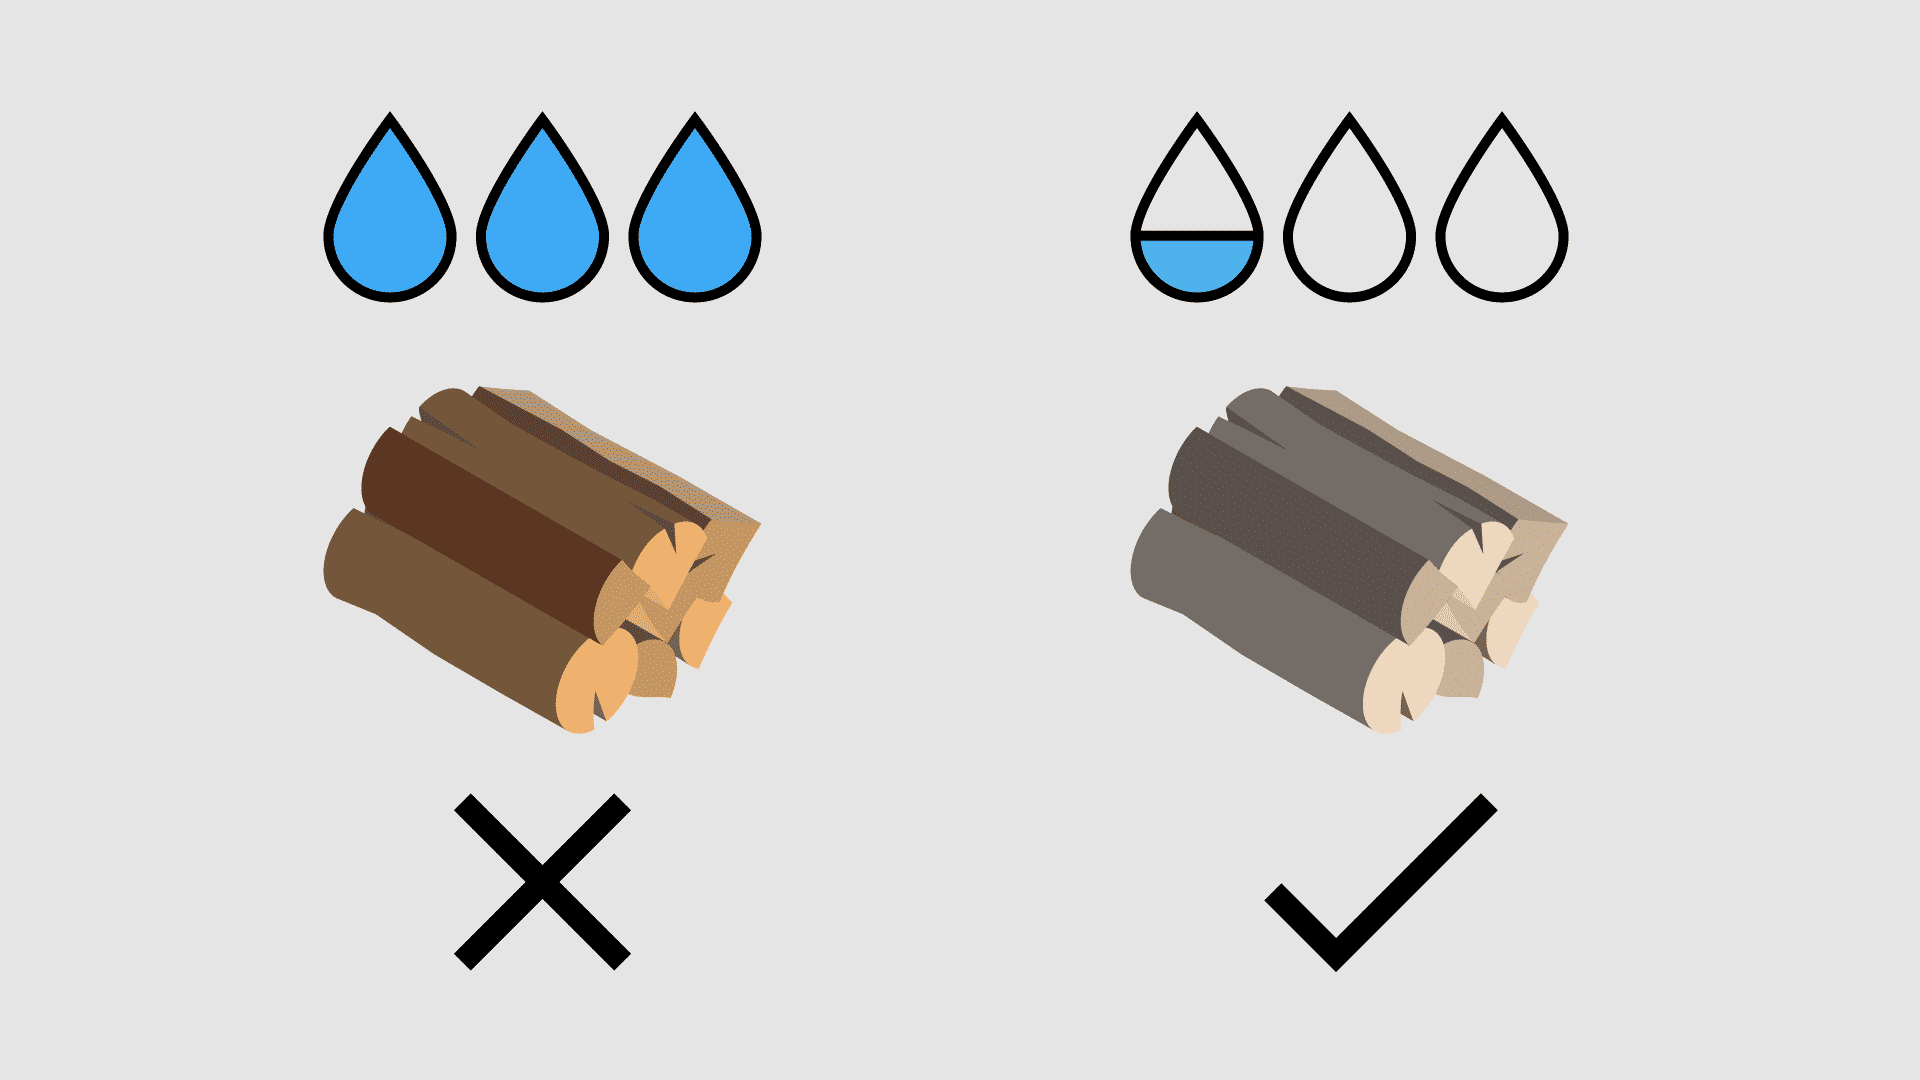 an illustration of the best type of wood to use inside a campervan wood-burning stove